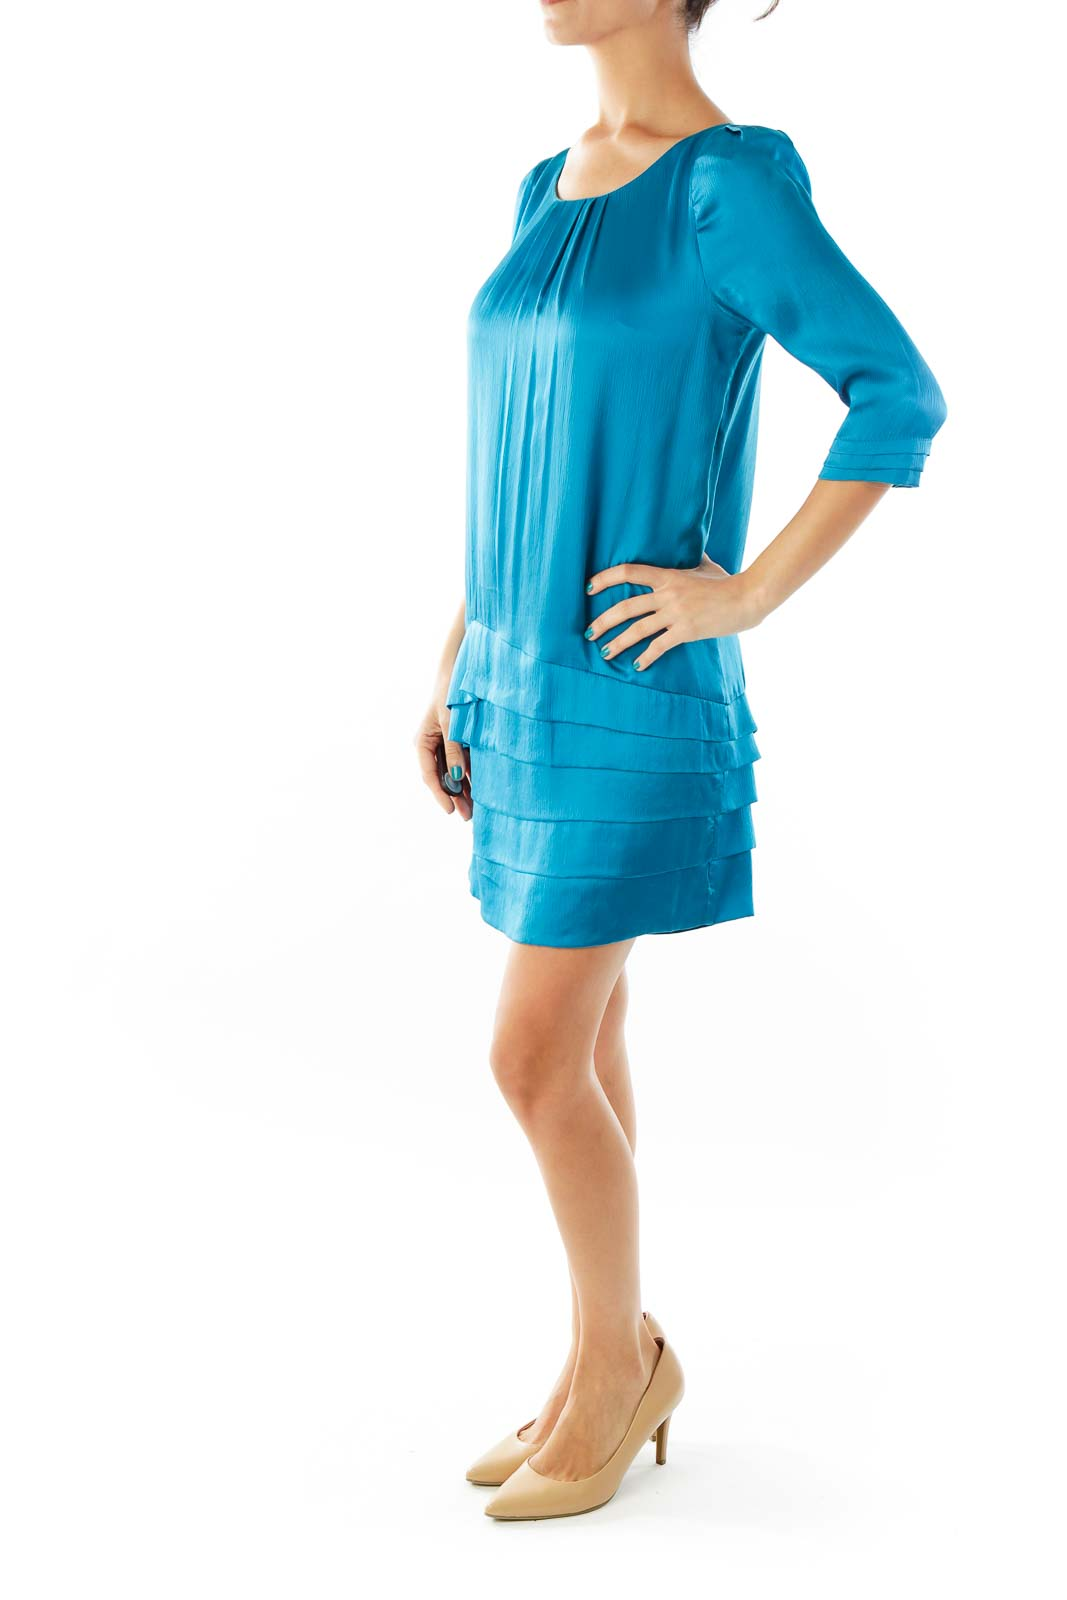 Turquoise Silk Cocktail Dress